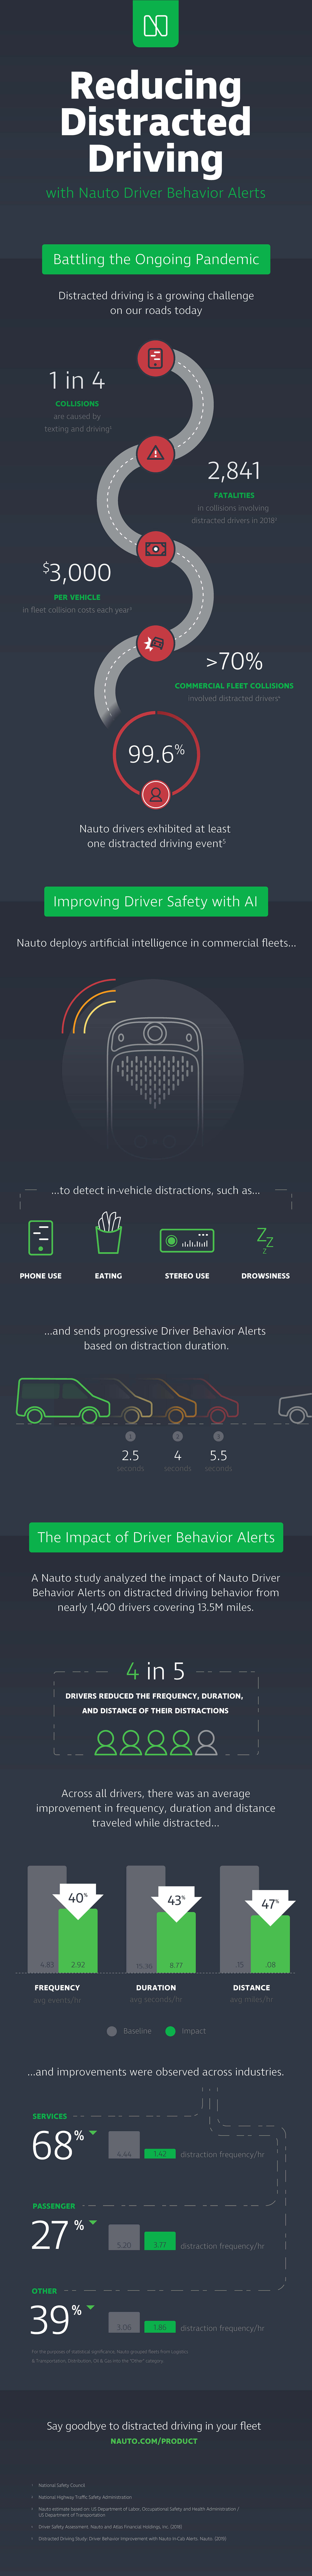 Reduce Distracted Driving infographic